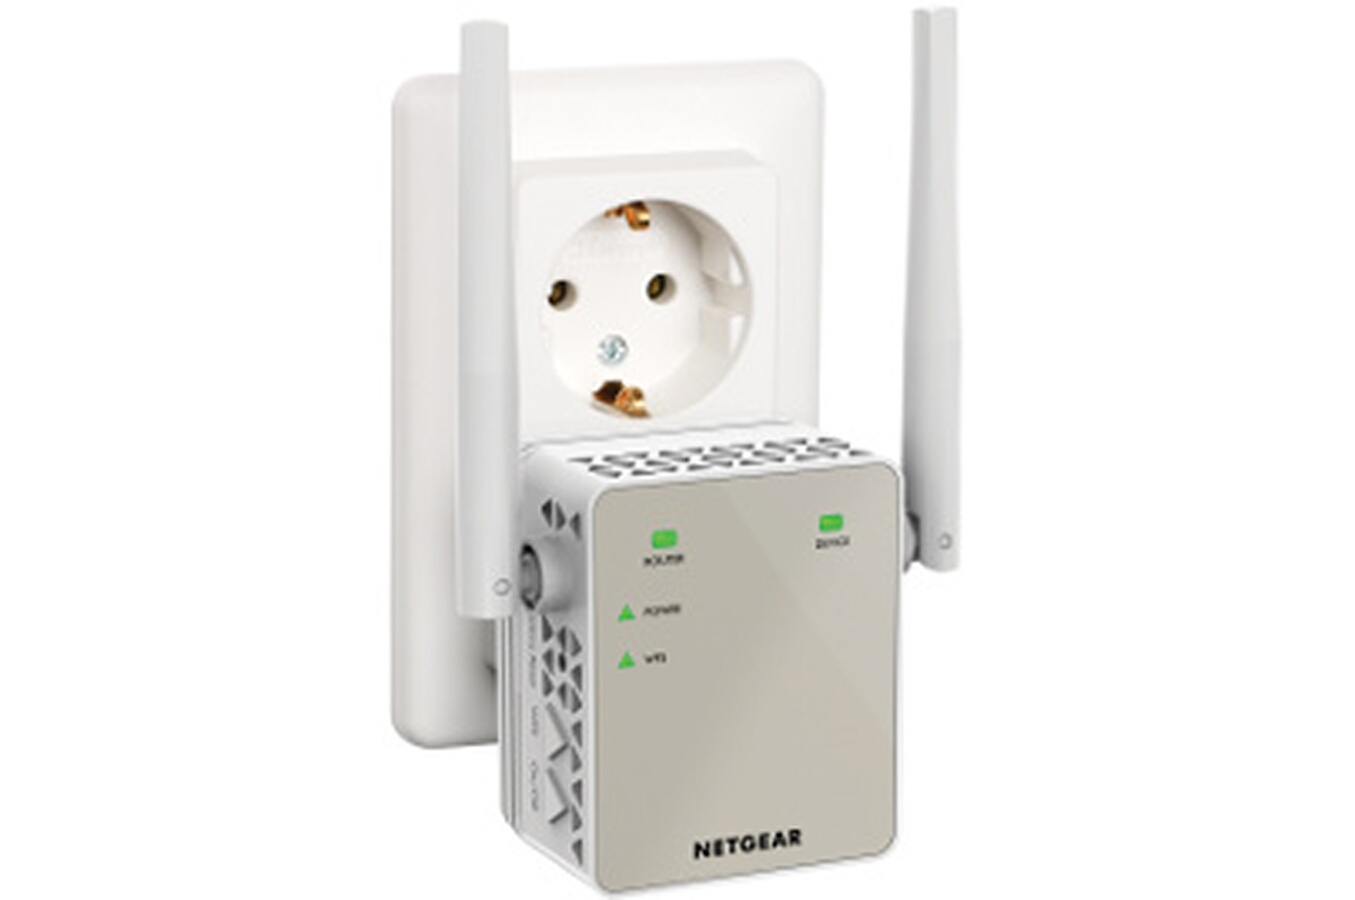 R p teur wifi netgear ex6120 100pes 4181514 darty for Repeteur wifi exterieur netgear